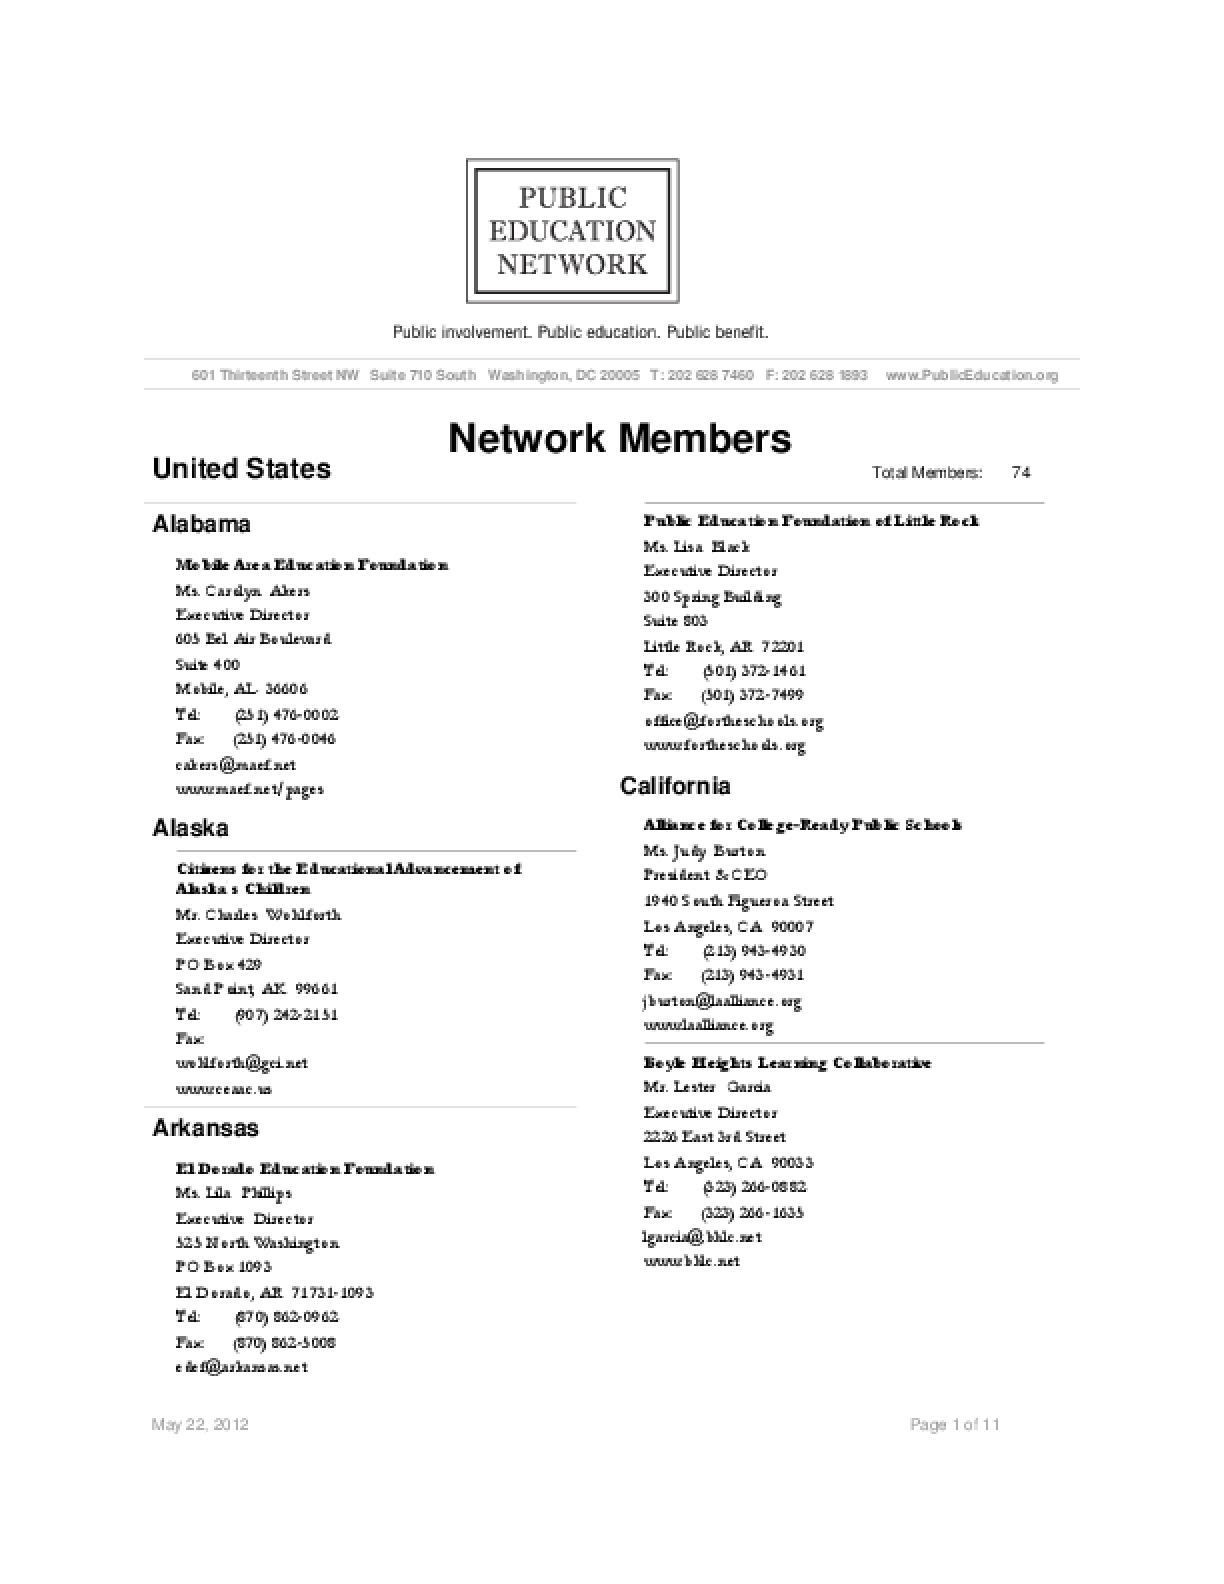 Public Education Network (PEN) Members Directory